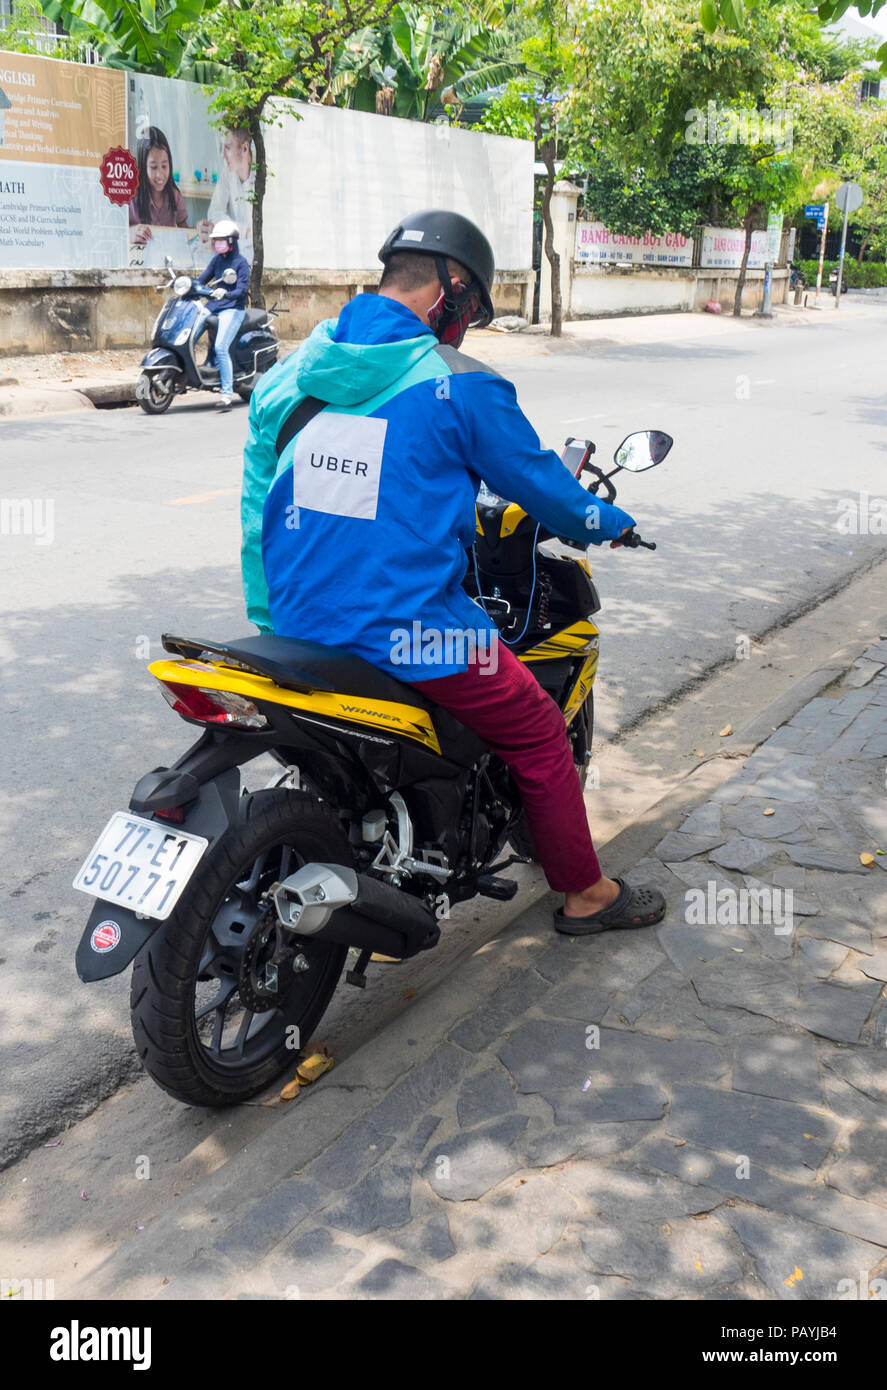 Ride sharing Uber motorcyclist on his motorbike in Ho Chi